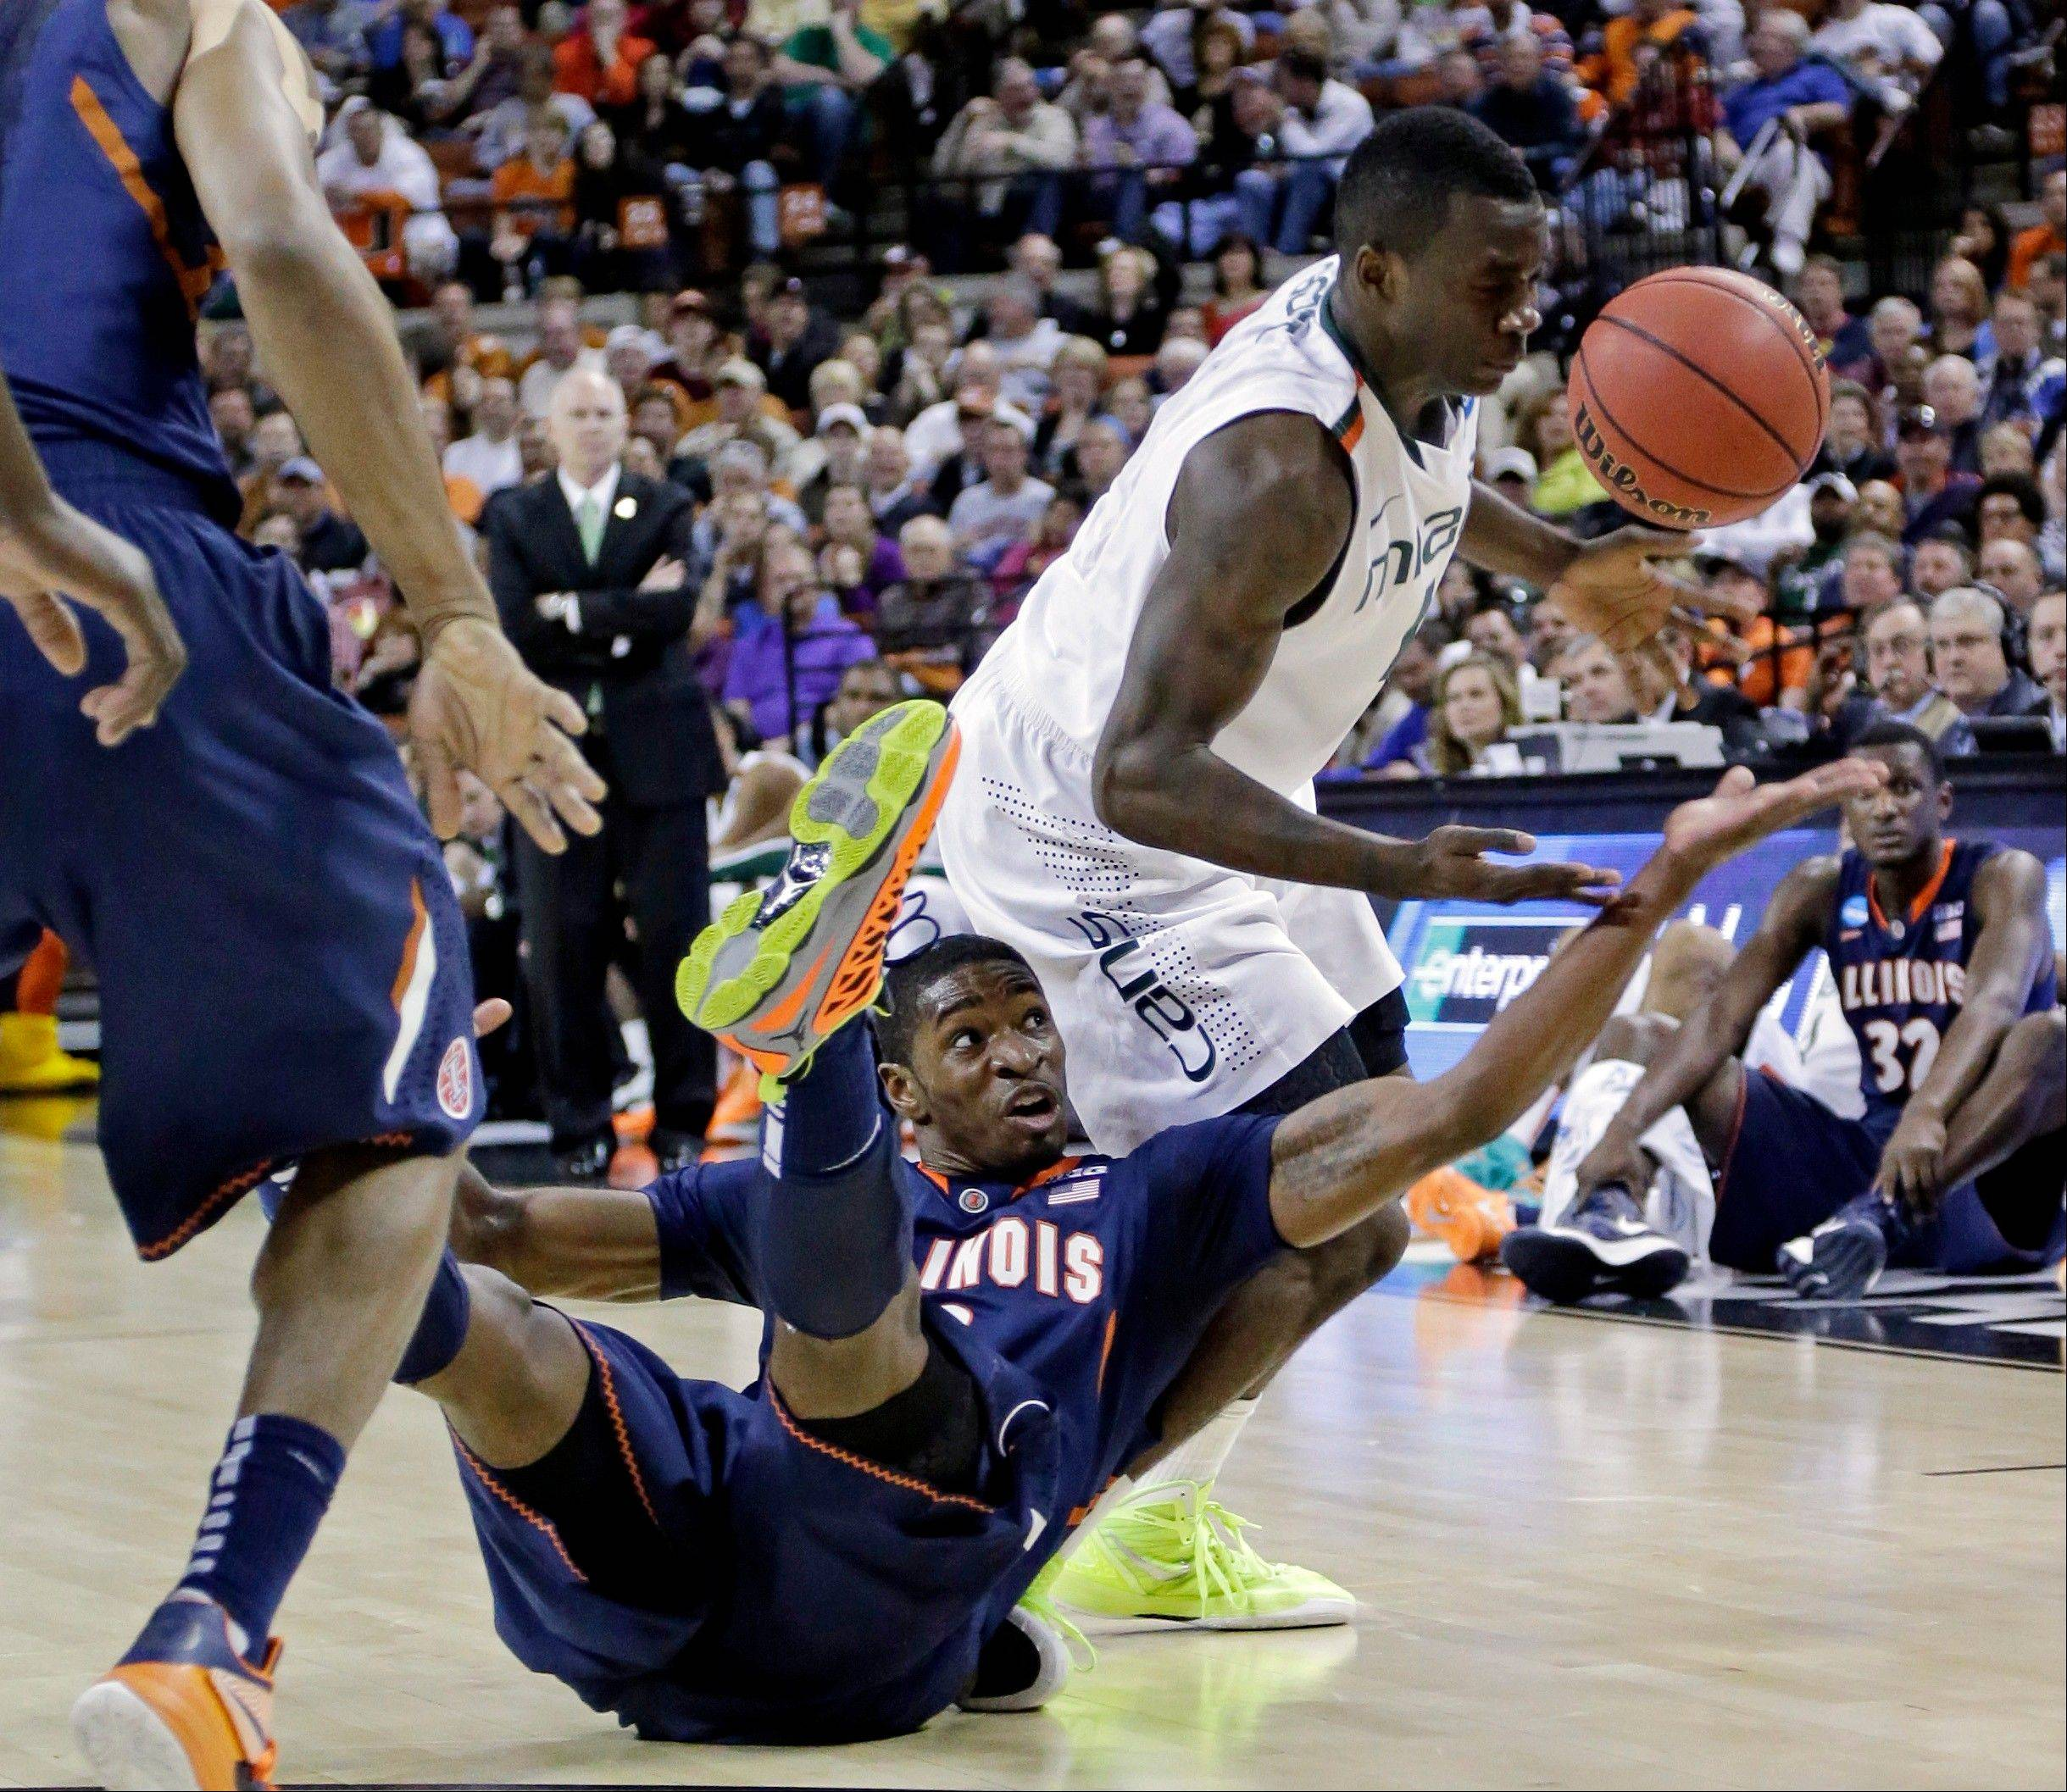 Illini lose thriller to Miami in third round